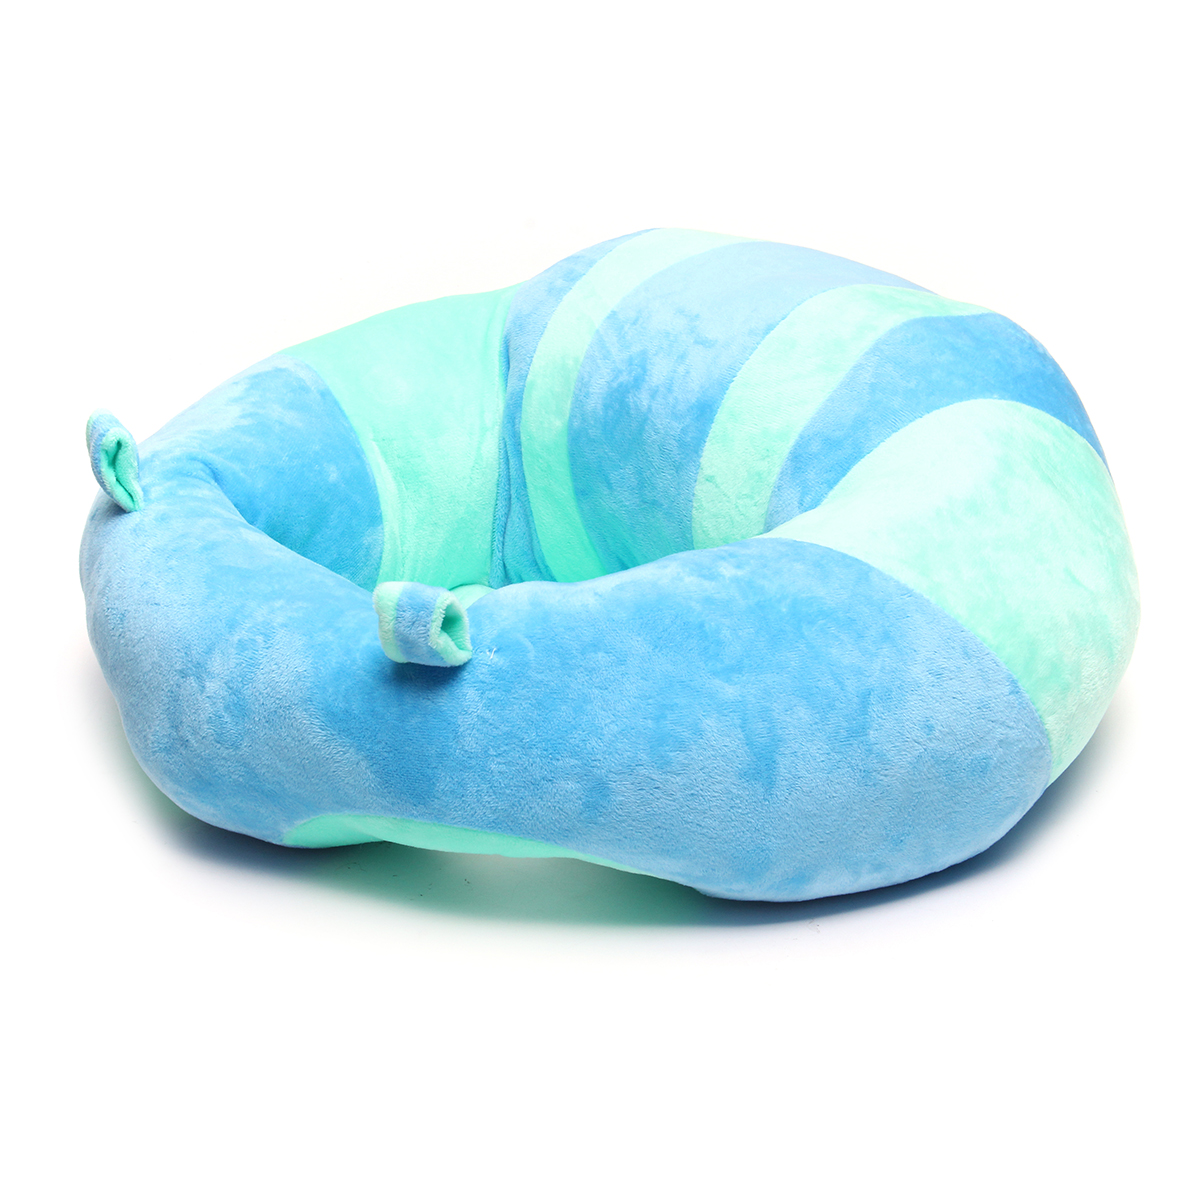 baby pillow chair office accessories parts sofa support seat nursing safety feeding